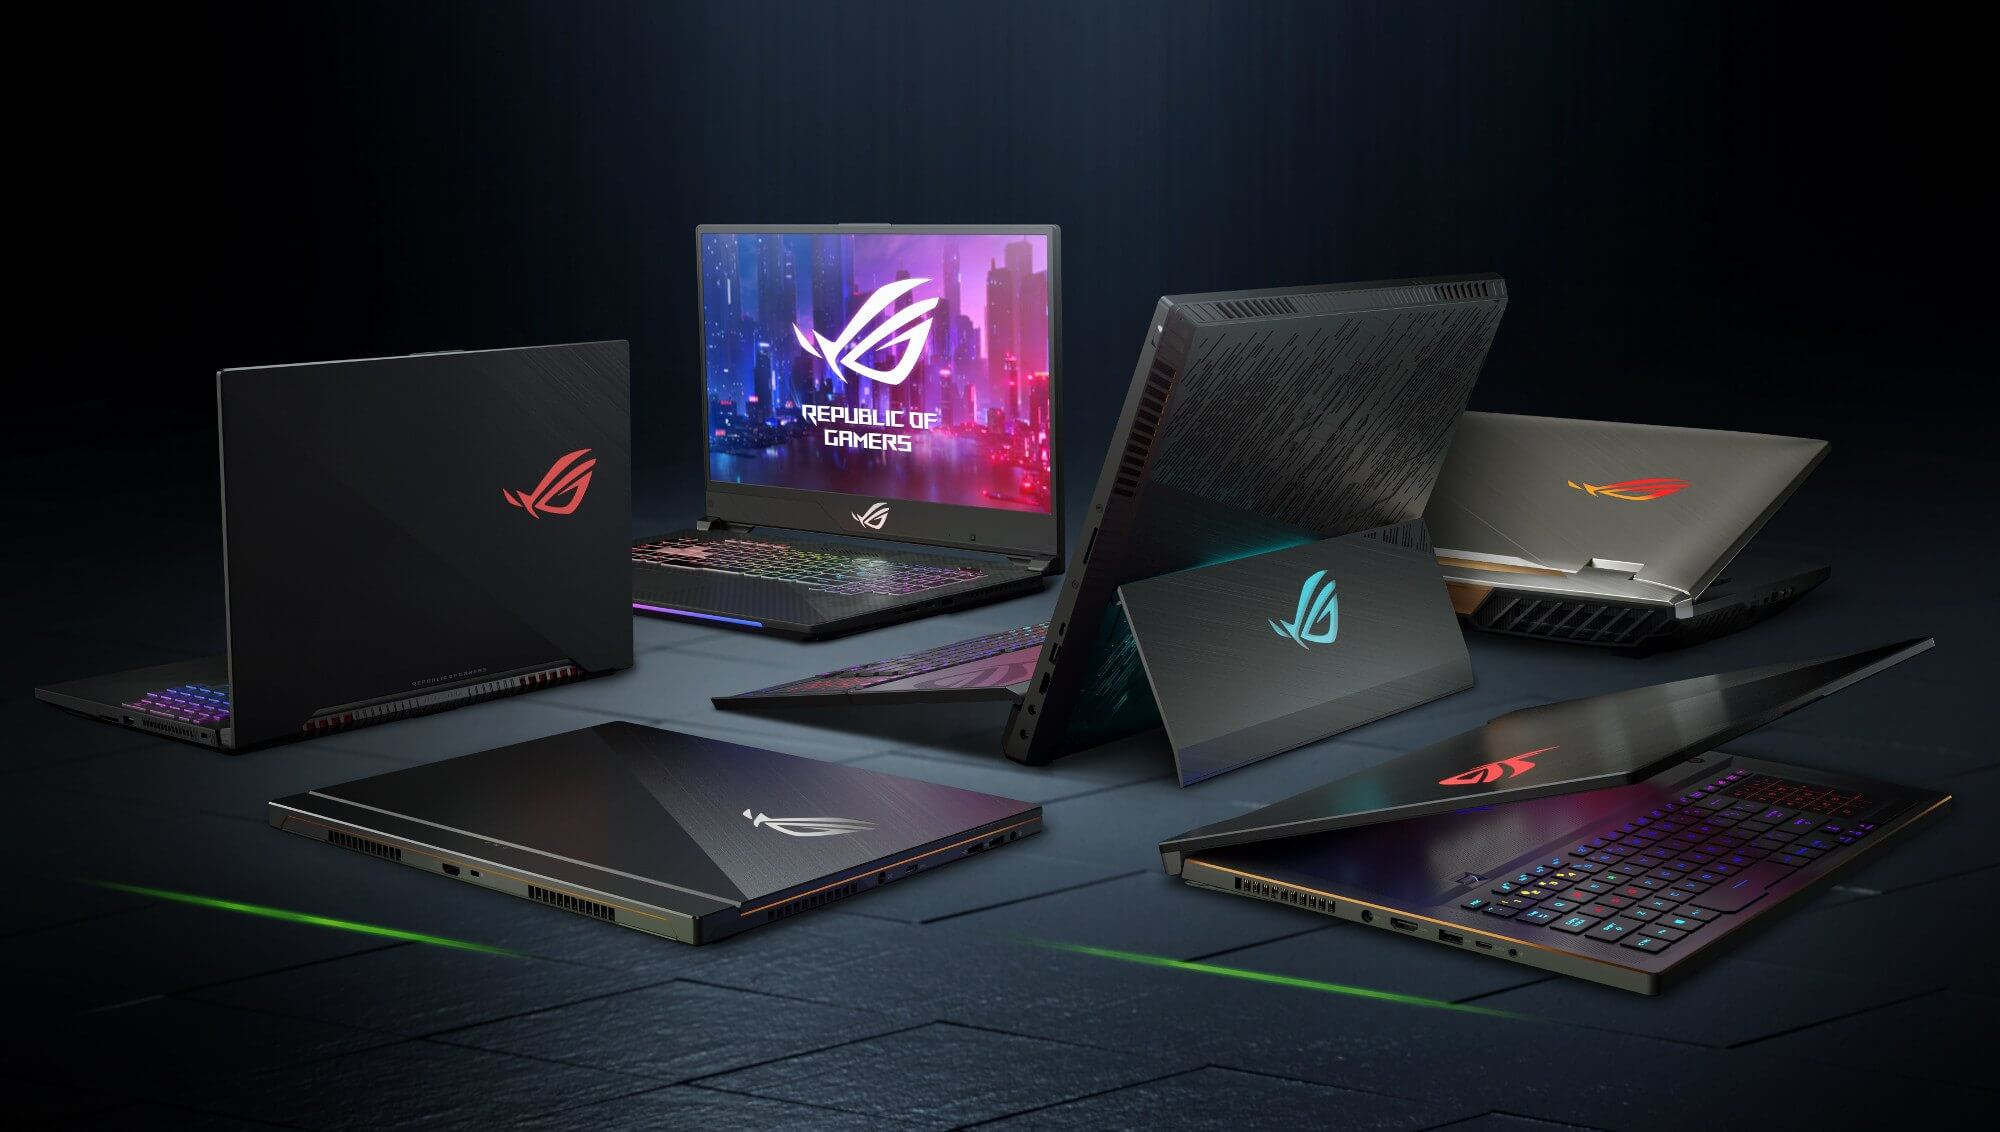 Hardware for gamers: All the Asus ROG products showcased at